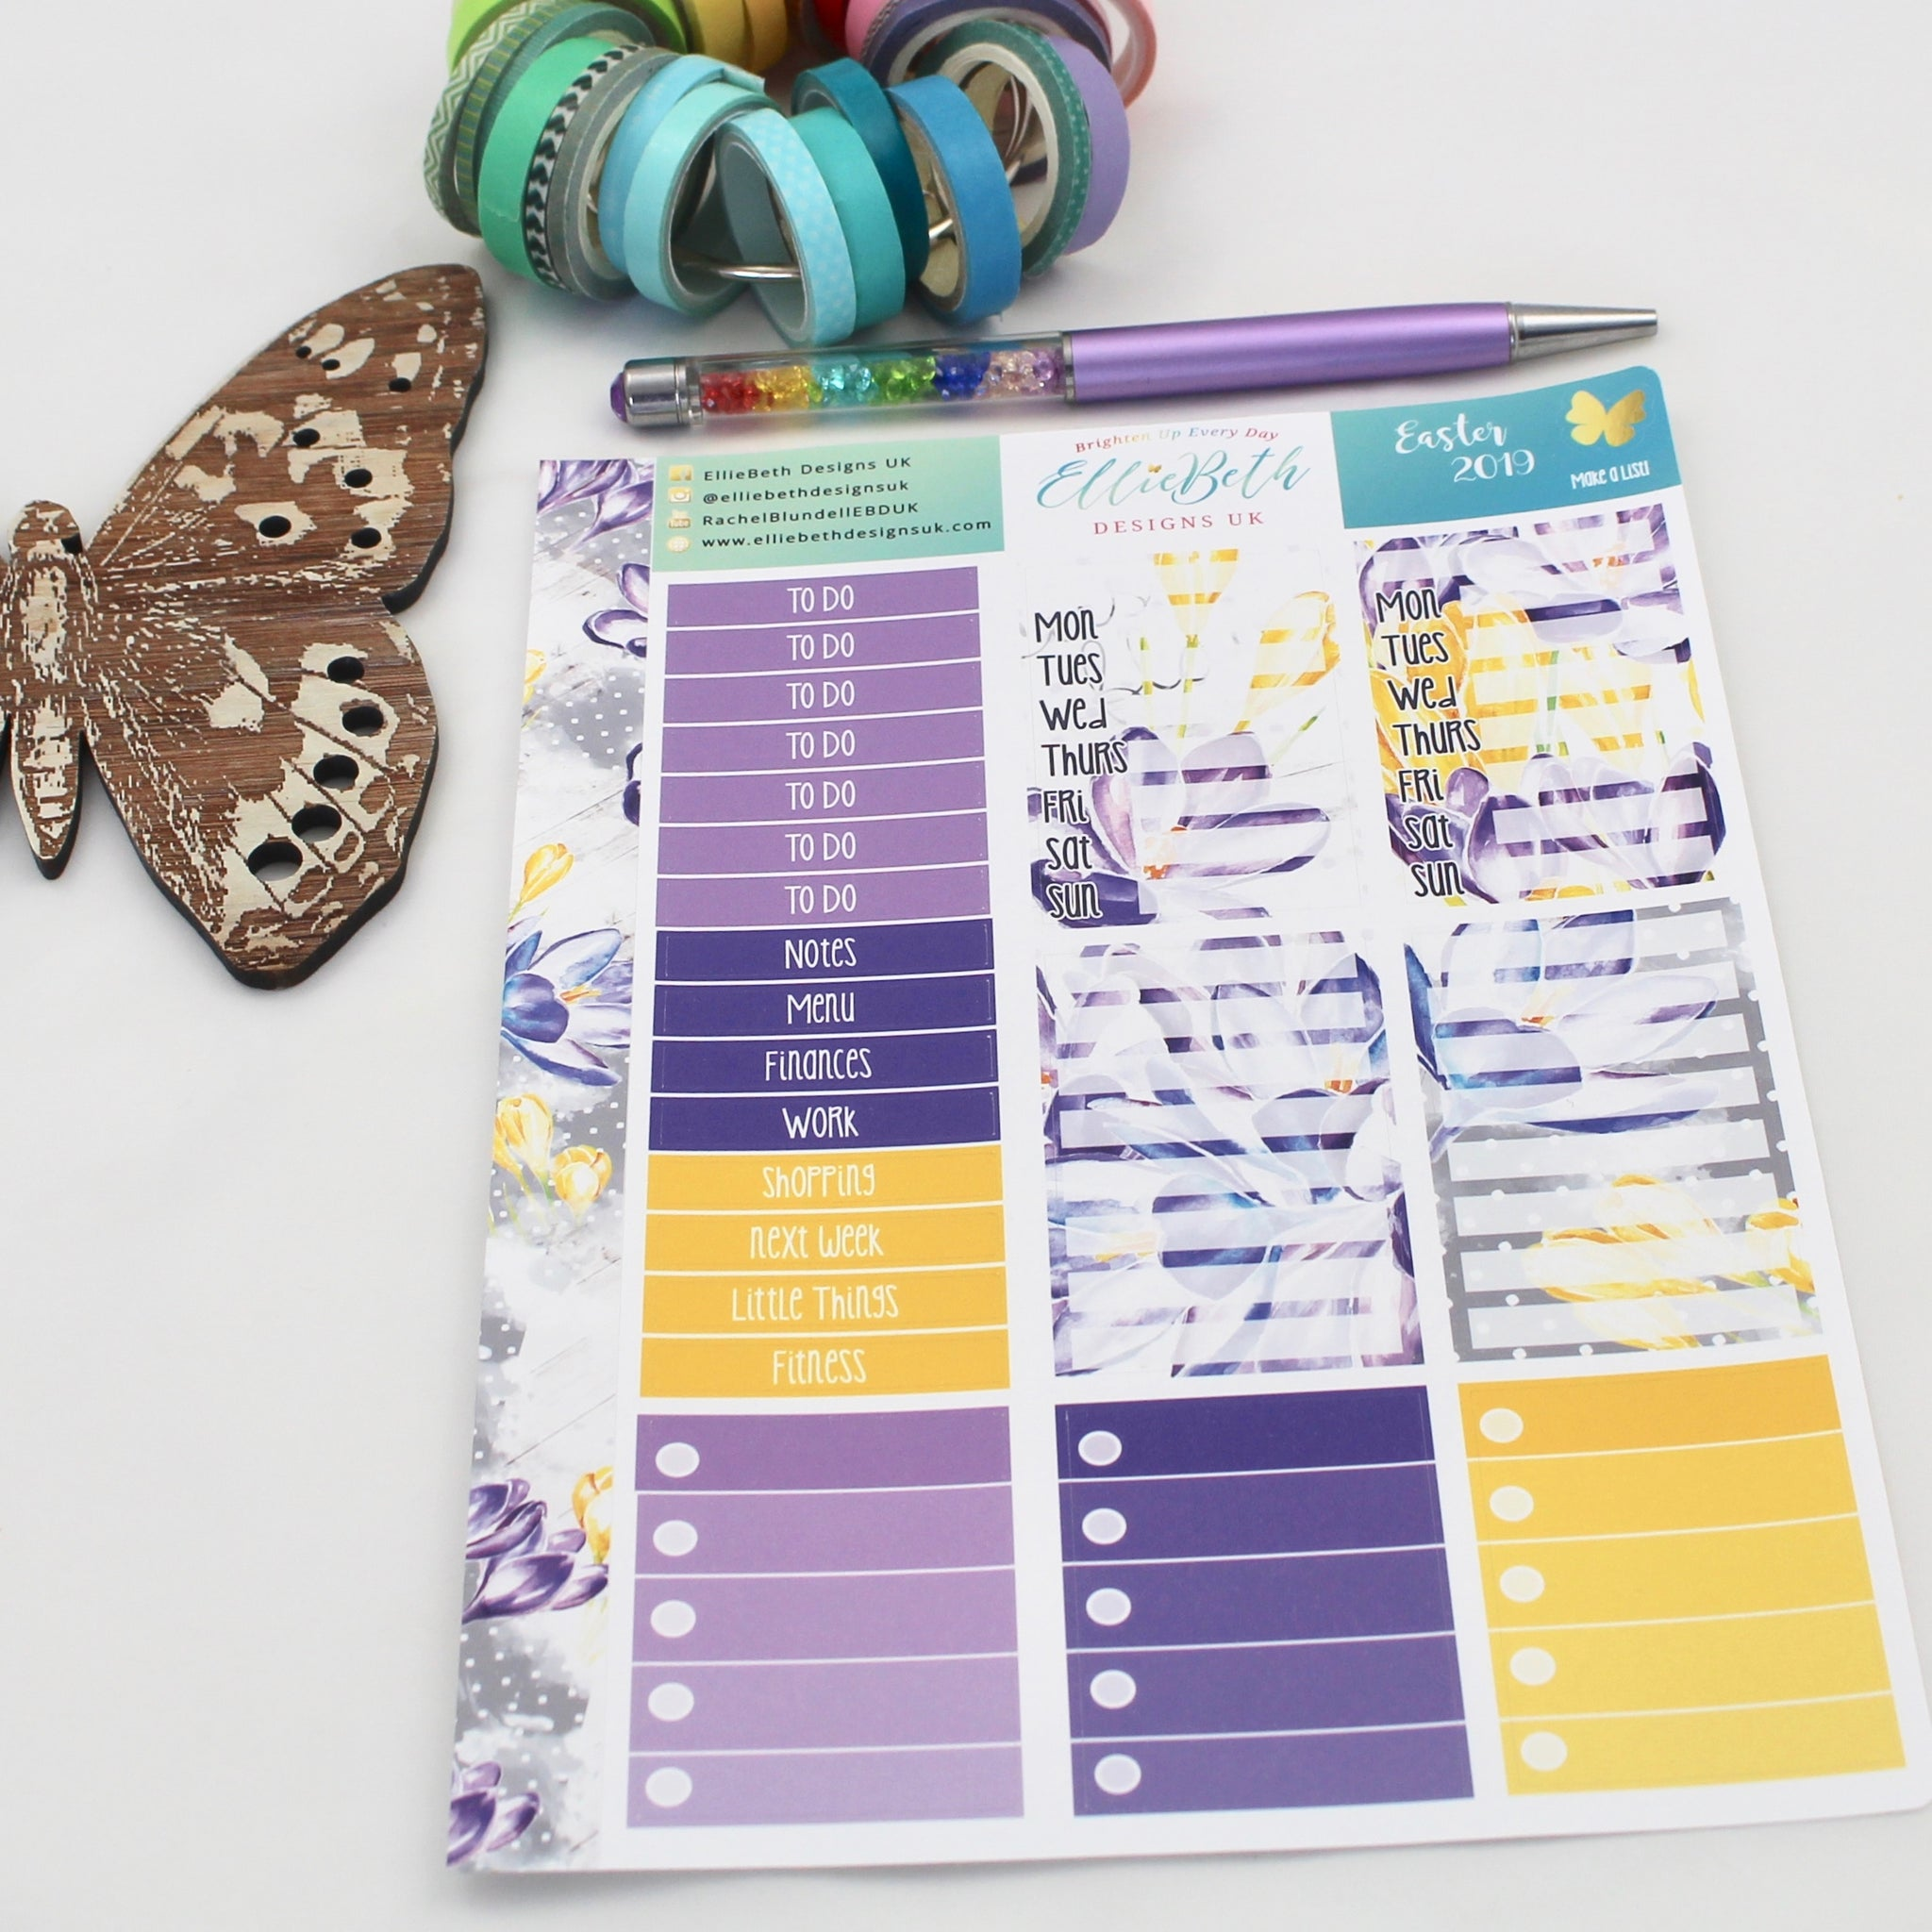 Easter 2019 - Make a List Sheet -  A5 binder ready planner stickers - EllieBeth Designs UK